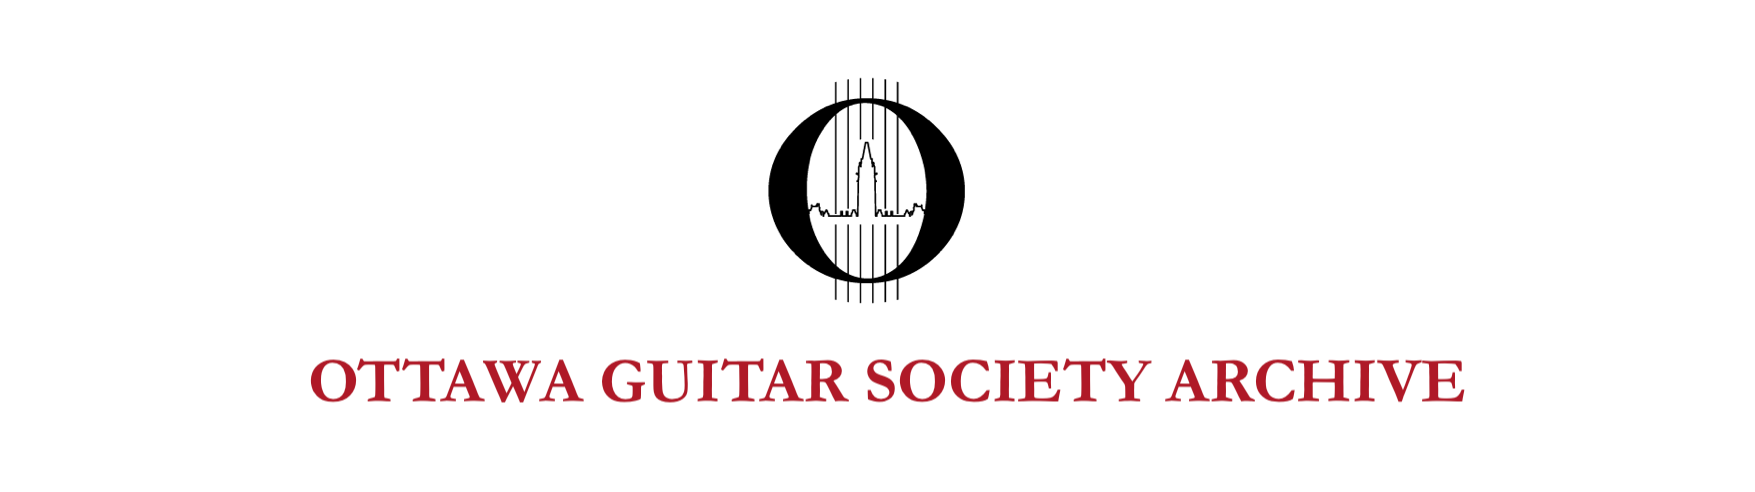 Ottawa Guitar Society Archive